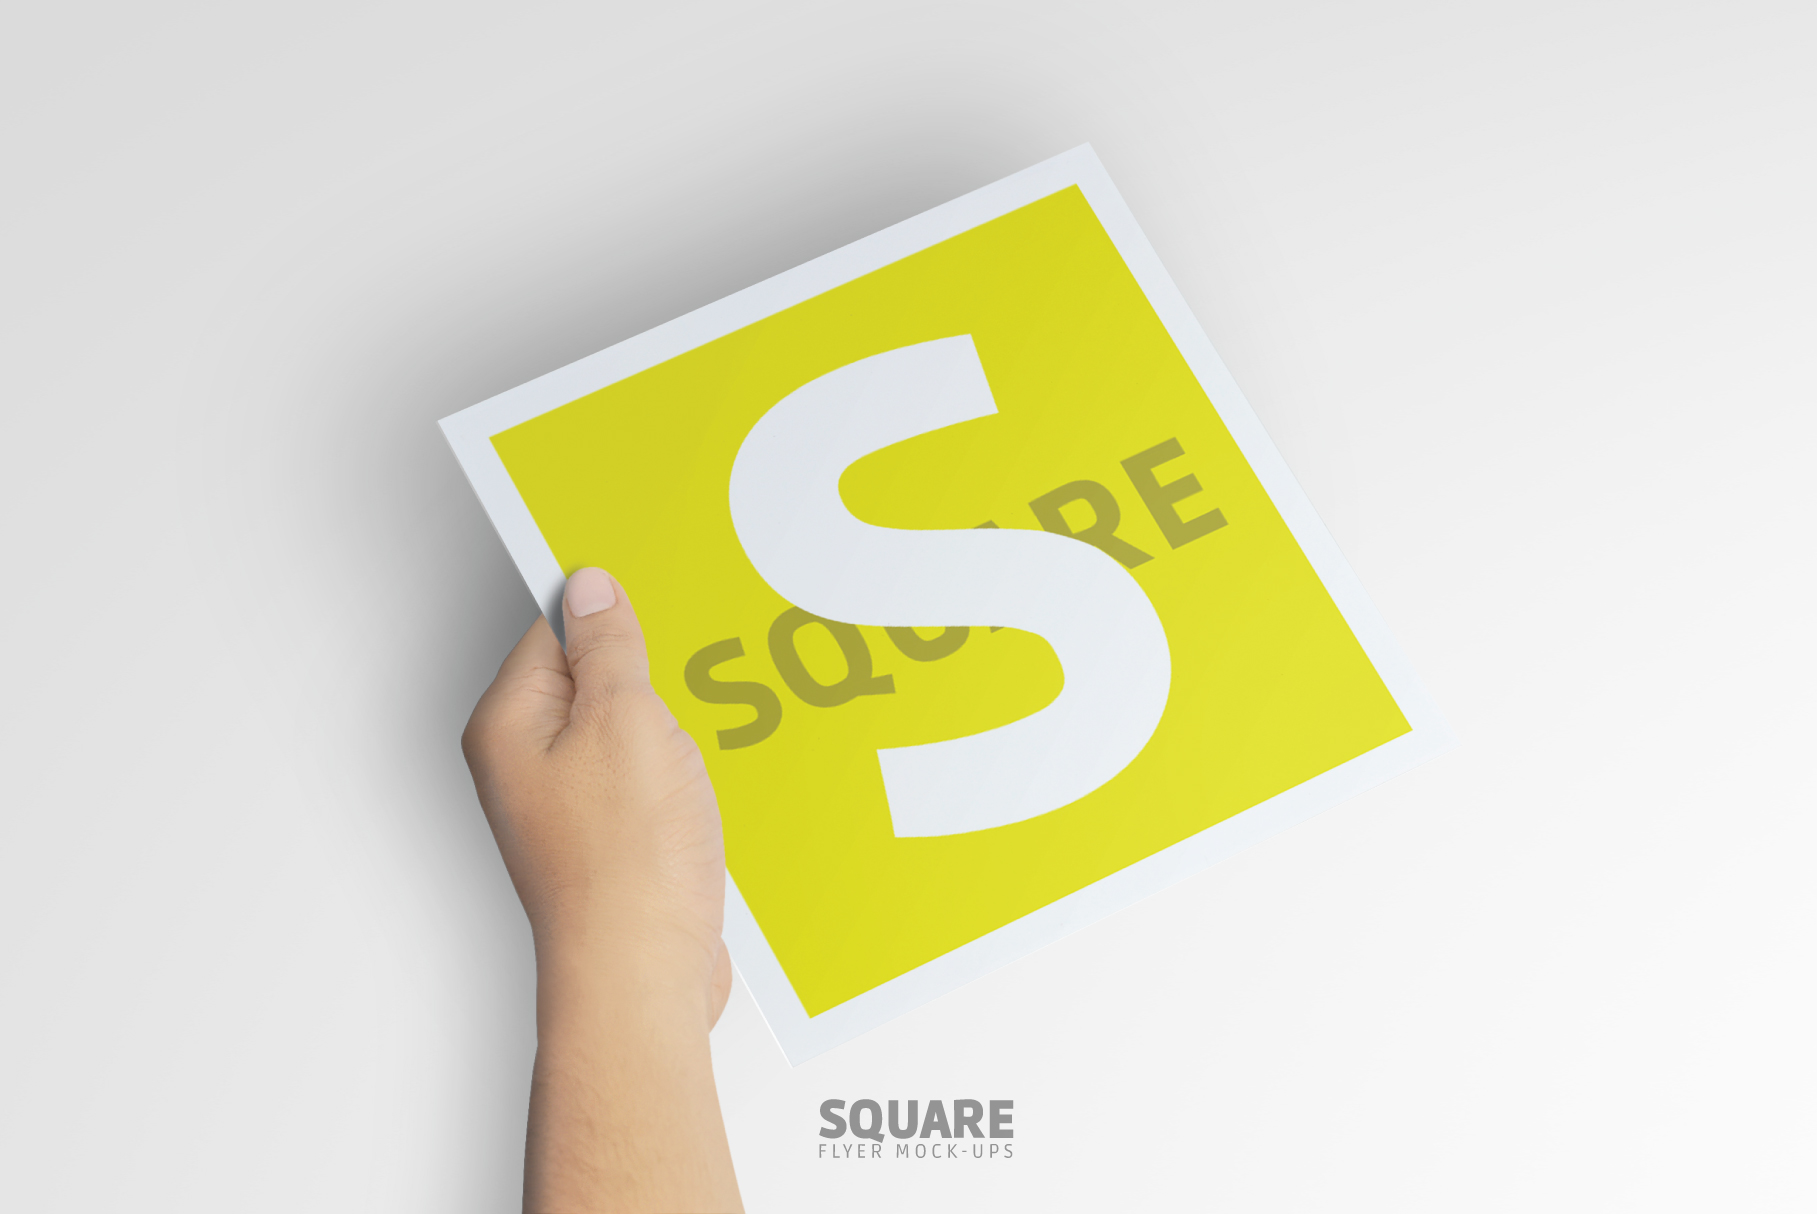 Square Flyer Mock-Up example image 2